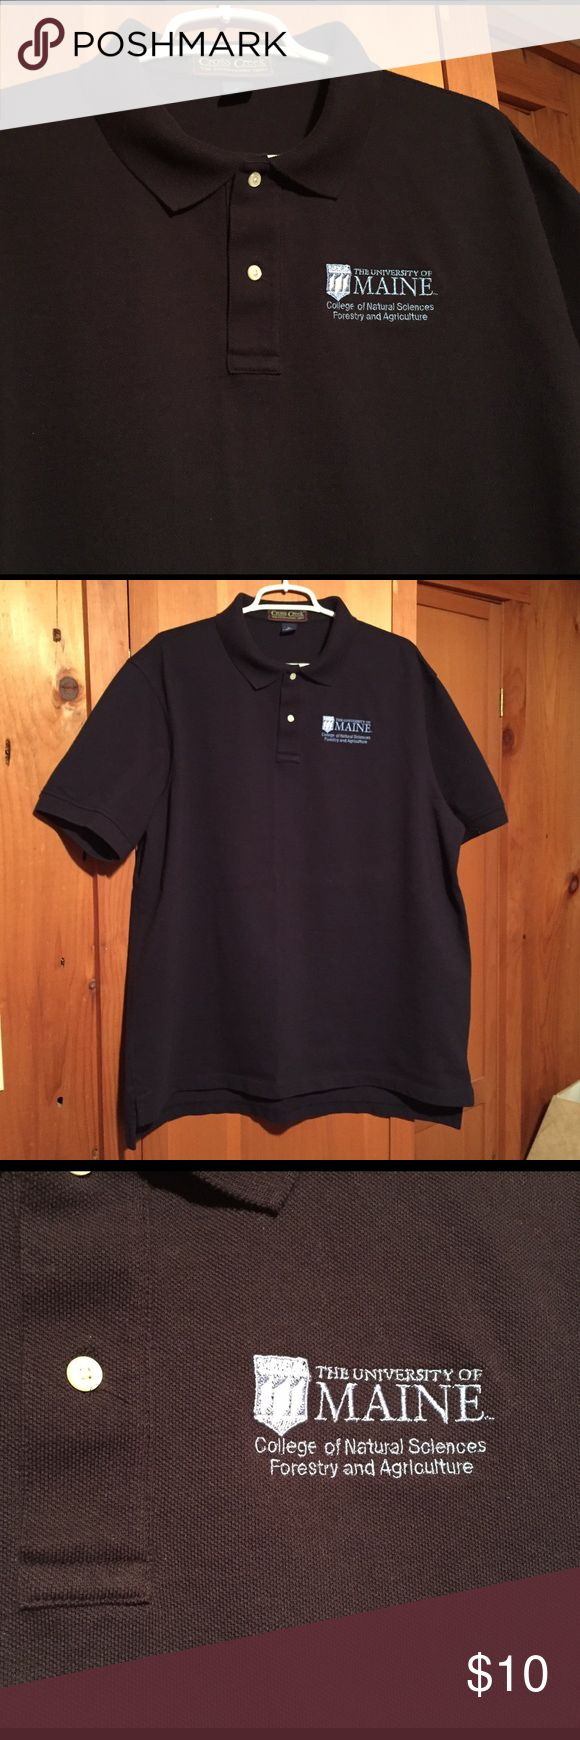 UMO Men's Polo Shirt University of Maine Polo Shirt 👕 worn but excellent condition ✨ TRADE / MAKE OFFER Shirts Polos